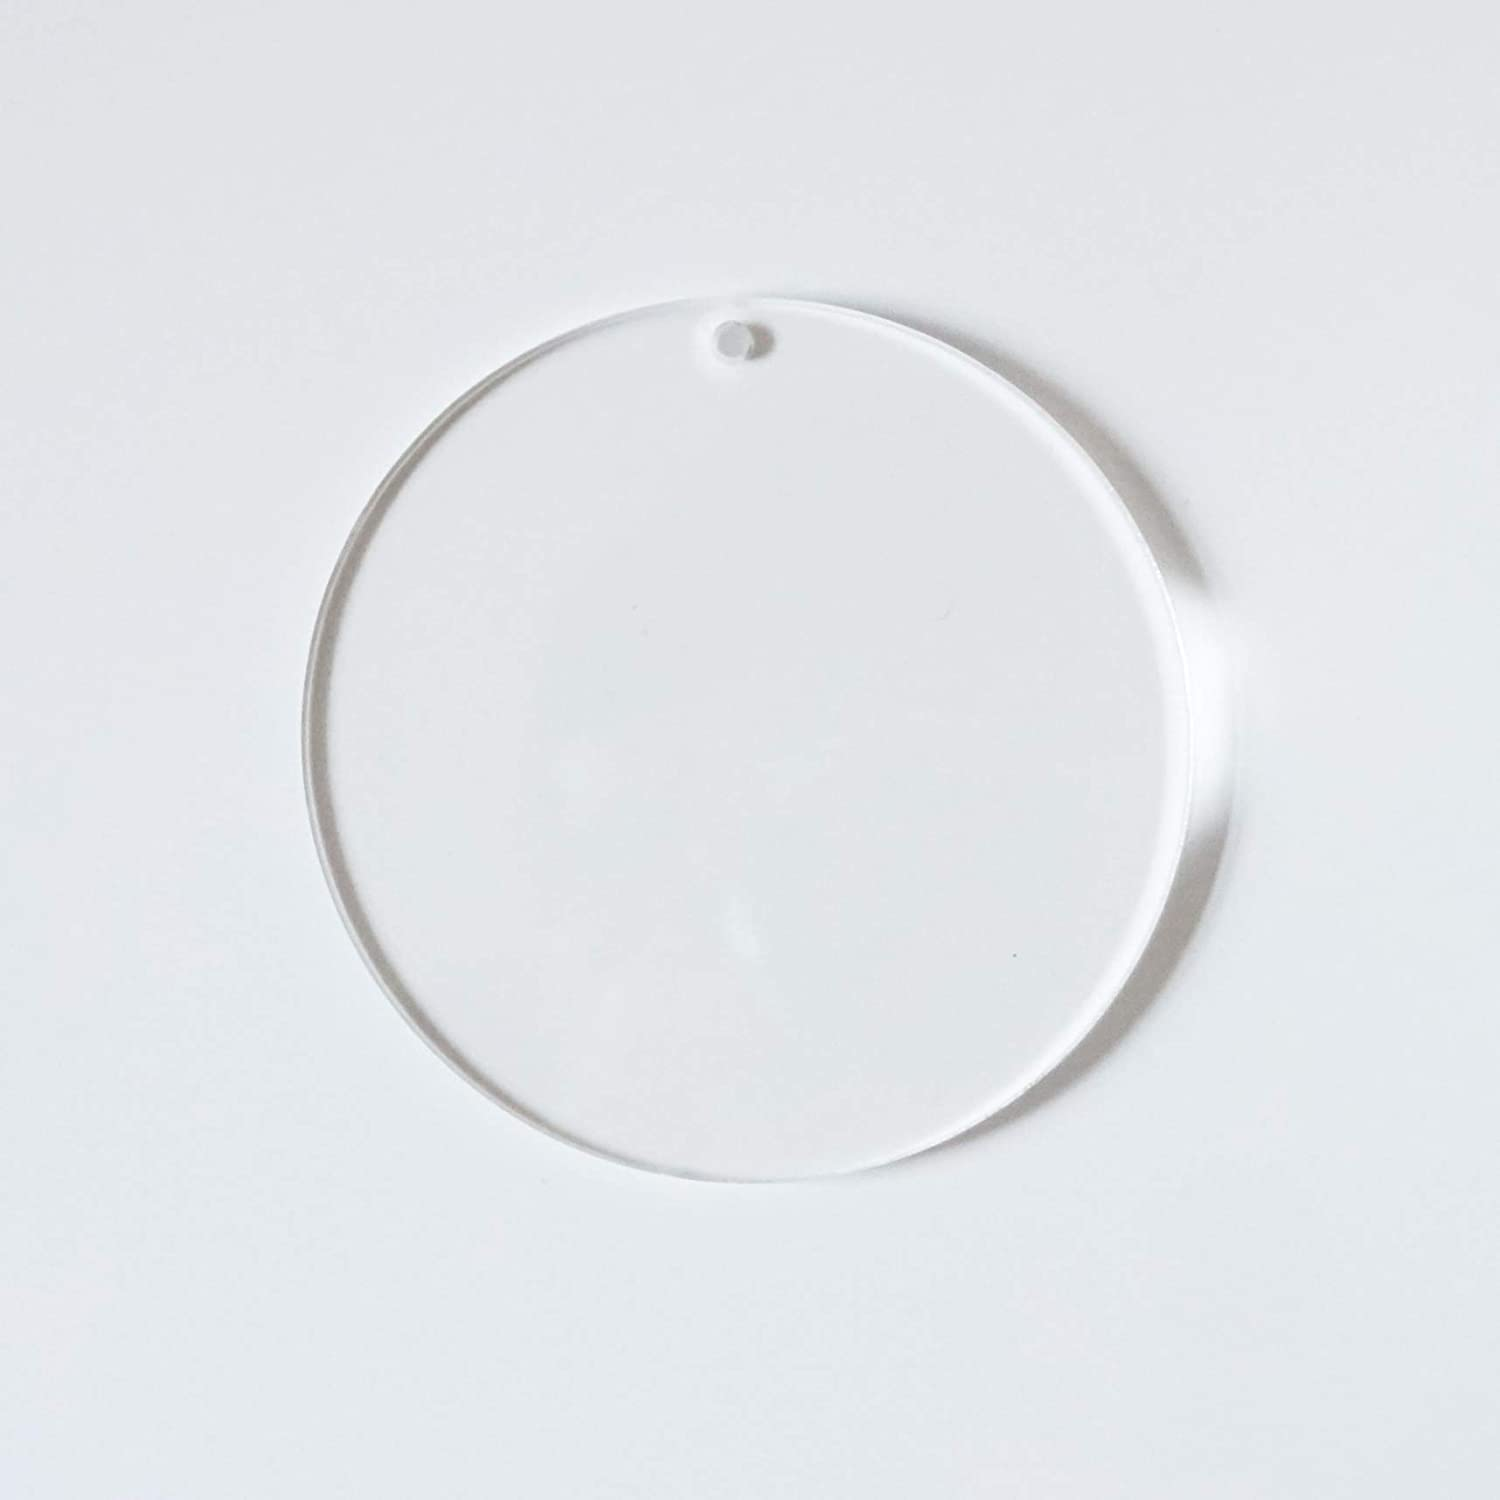 Round Clear Blank Acrylic Circle Discs with Keychains 4 In, 20 Pack